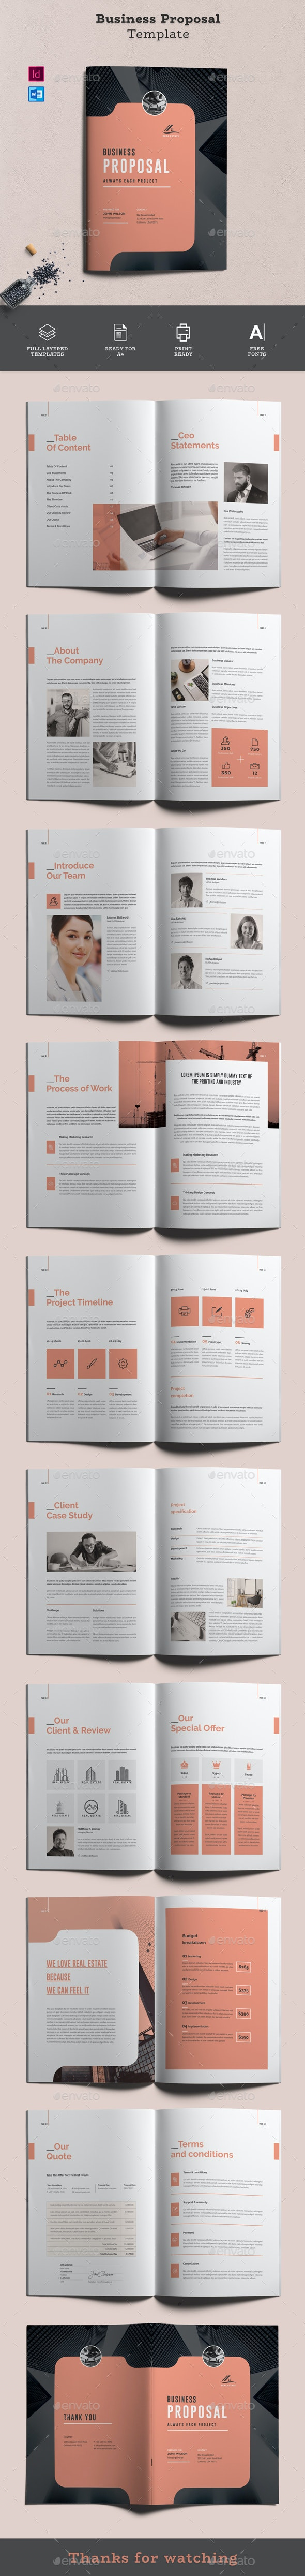 Proposal Template Word - Proposals & Invoices Stationery